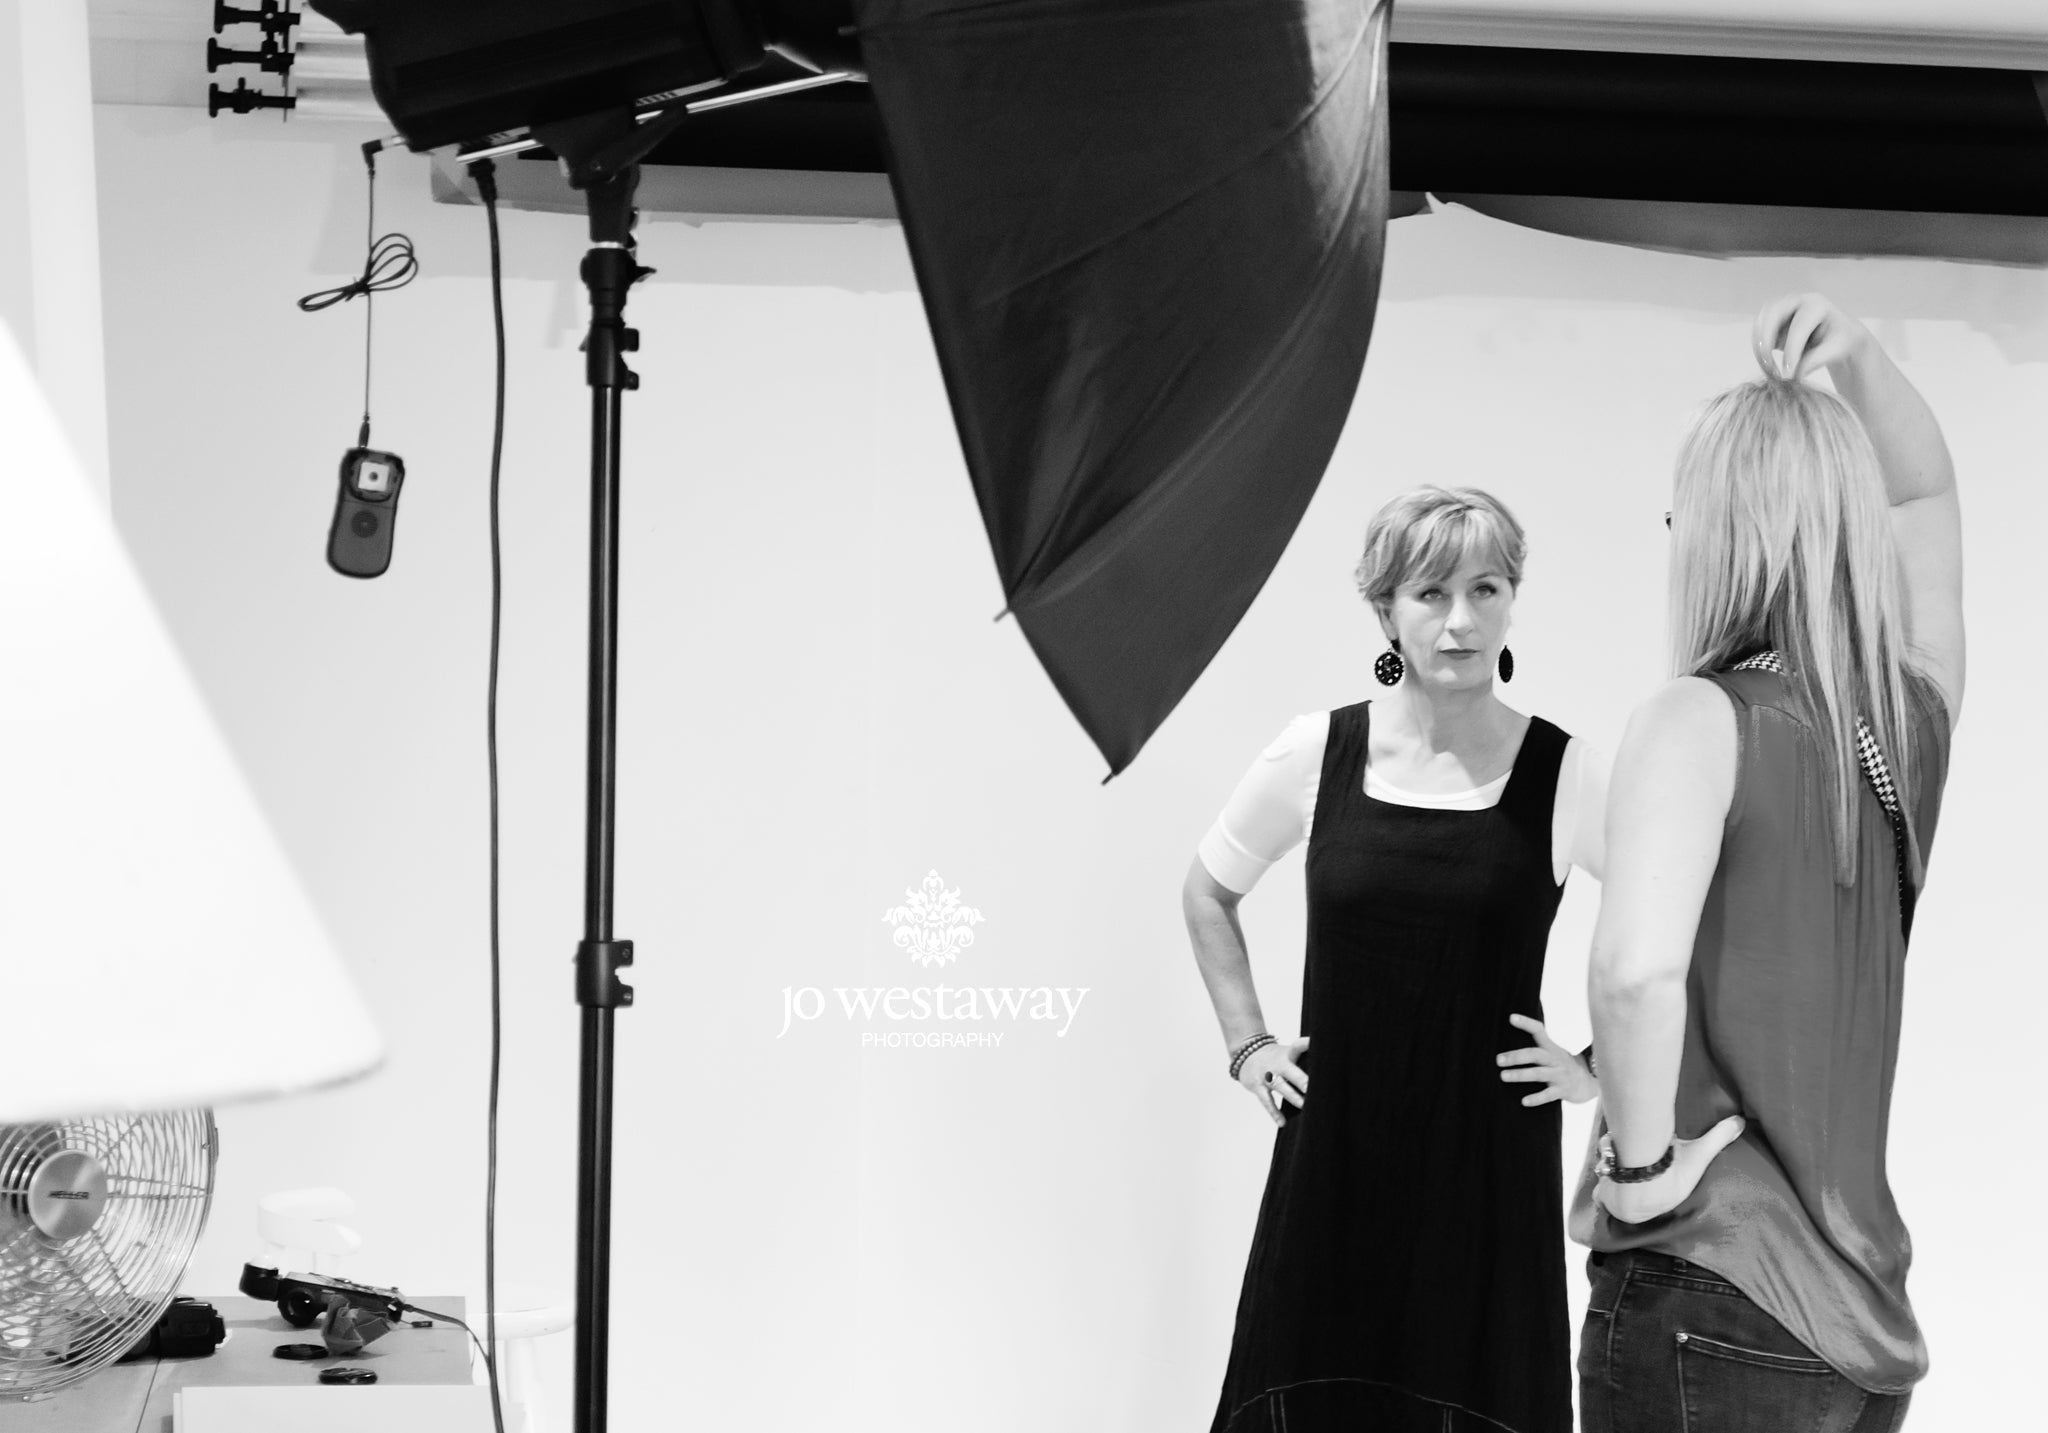 Behind the scenes - personal branding photography session for business women